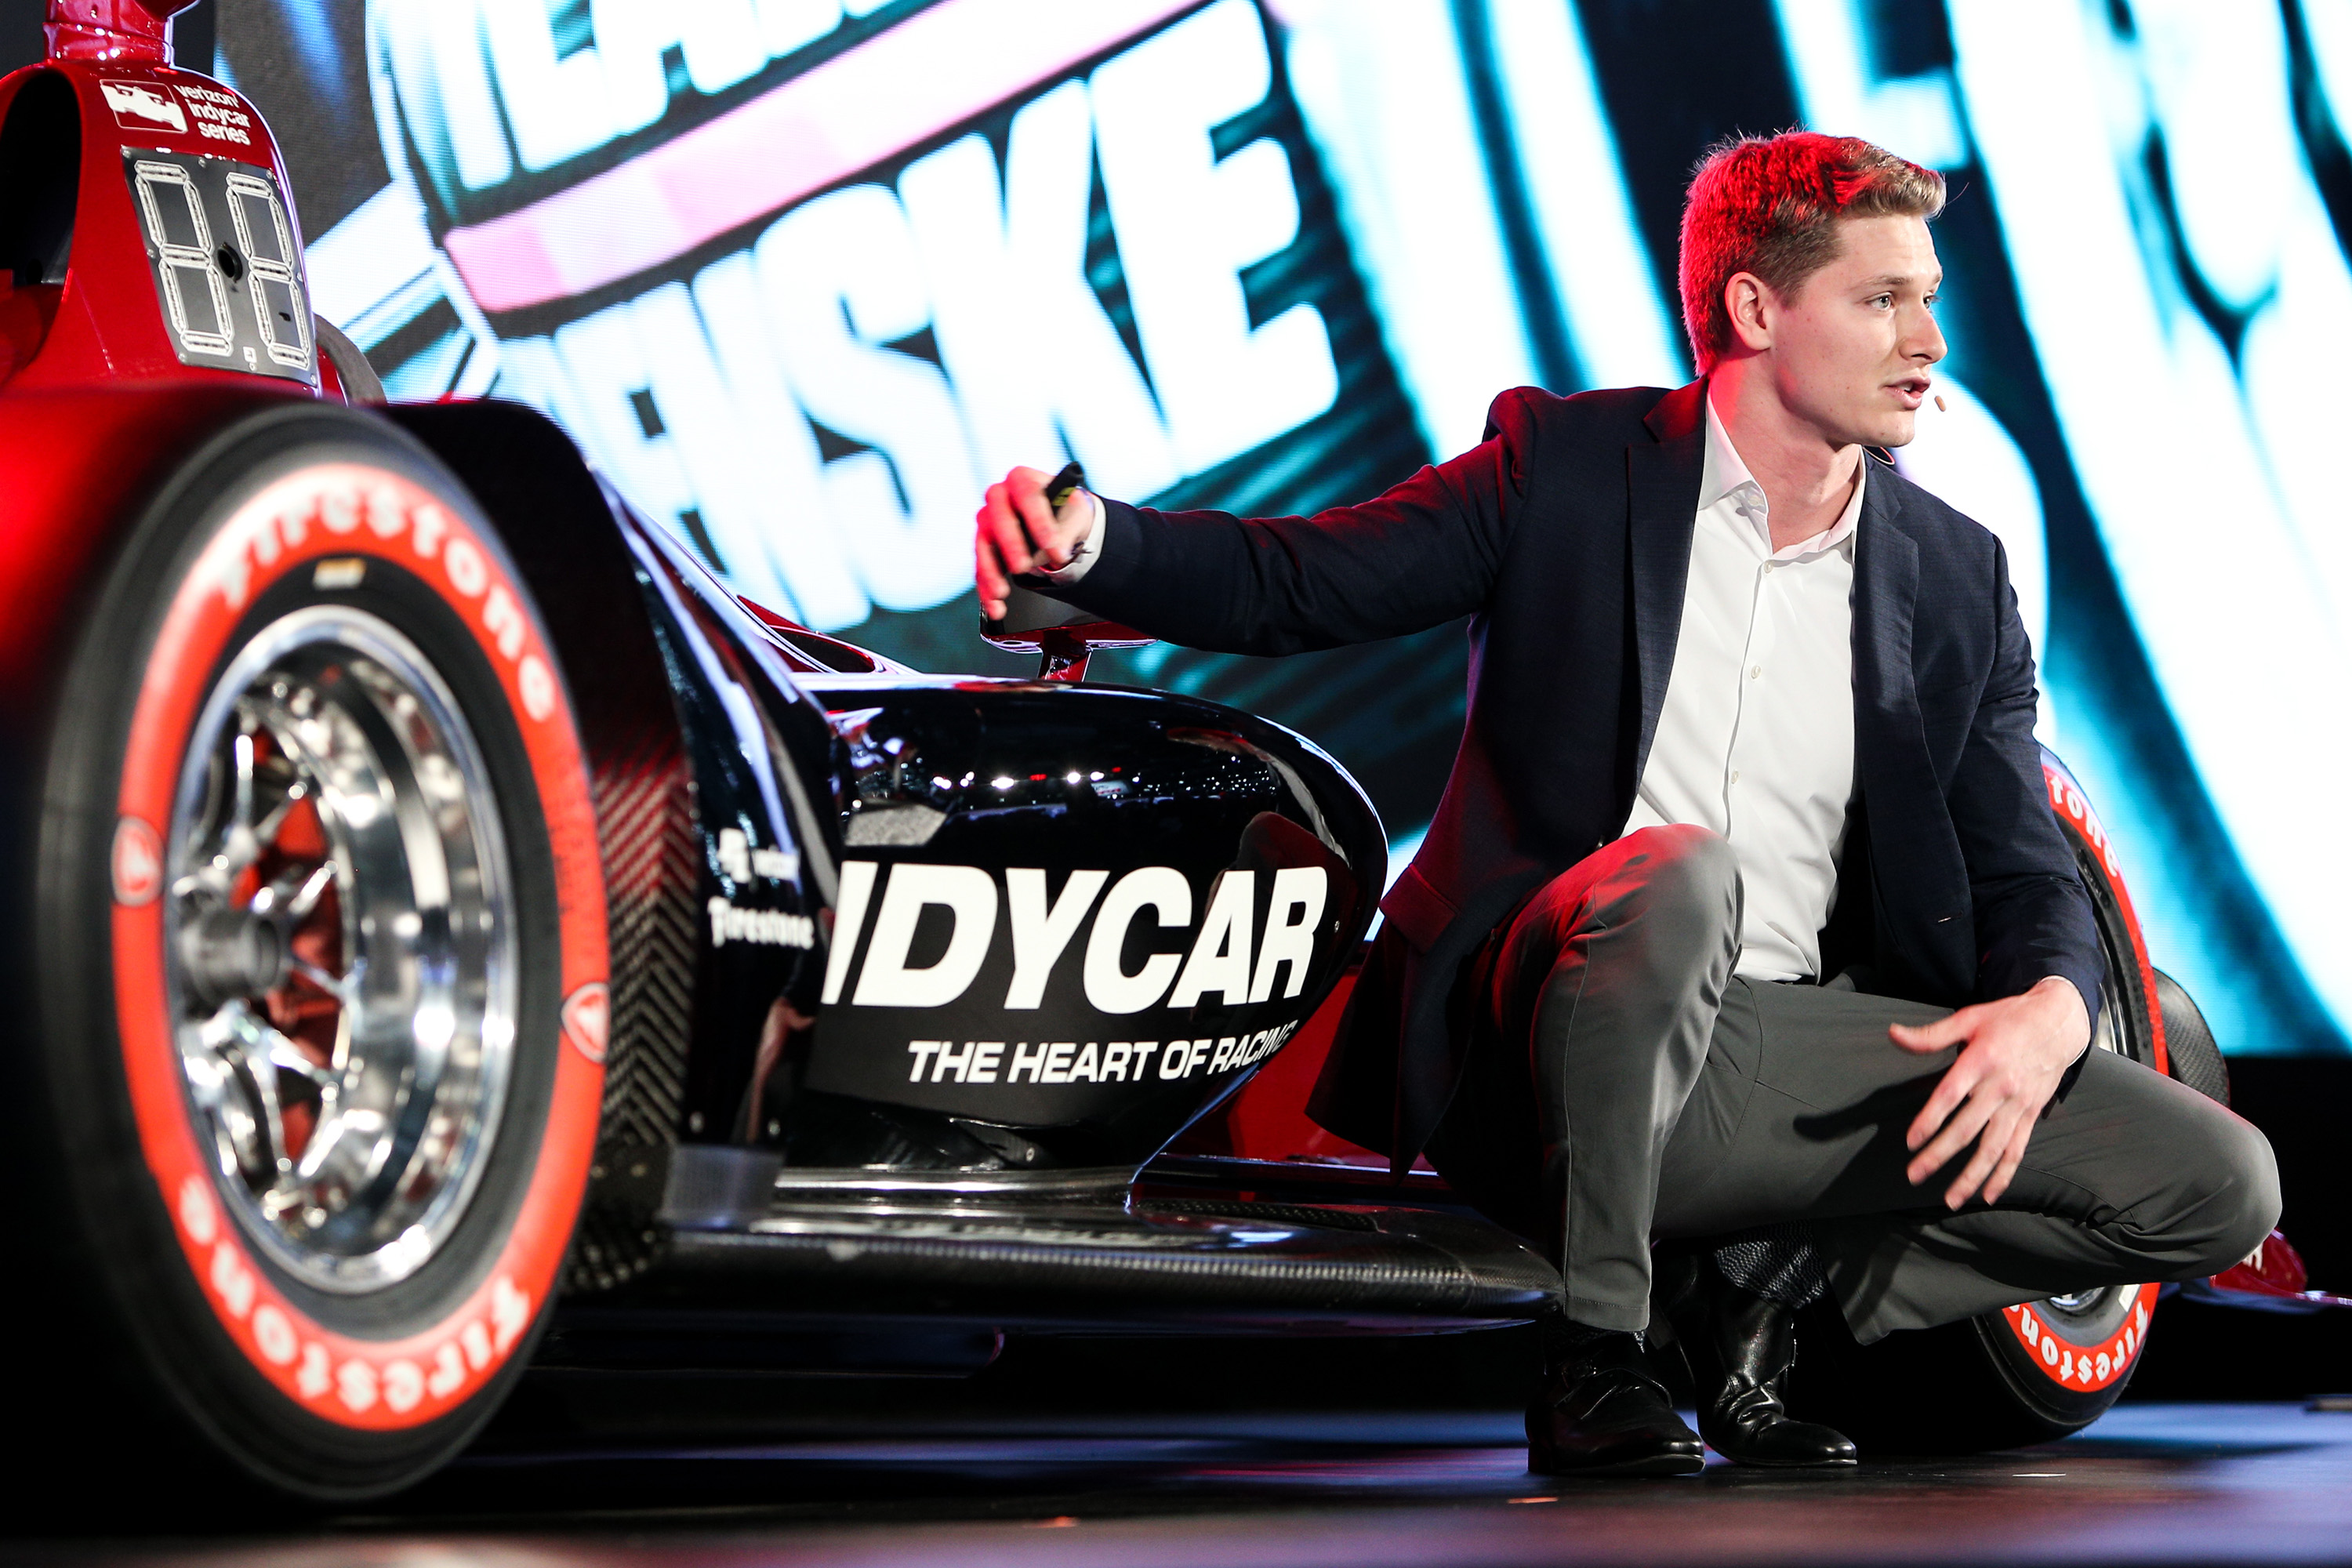 Josef Newgarden debuts the 2018 Indycar Chassis